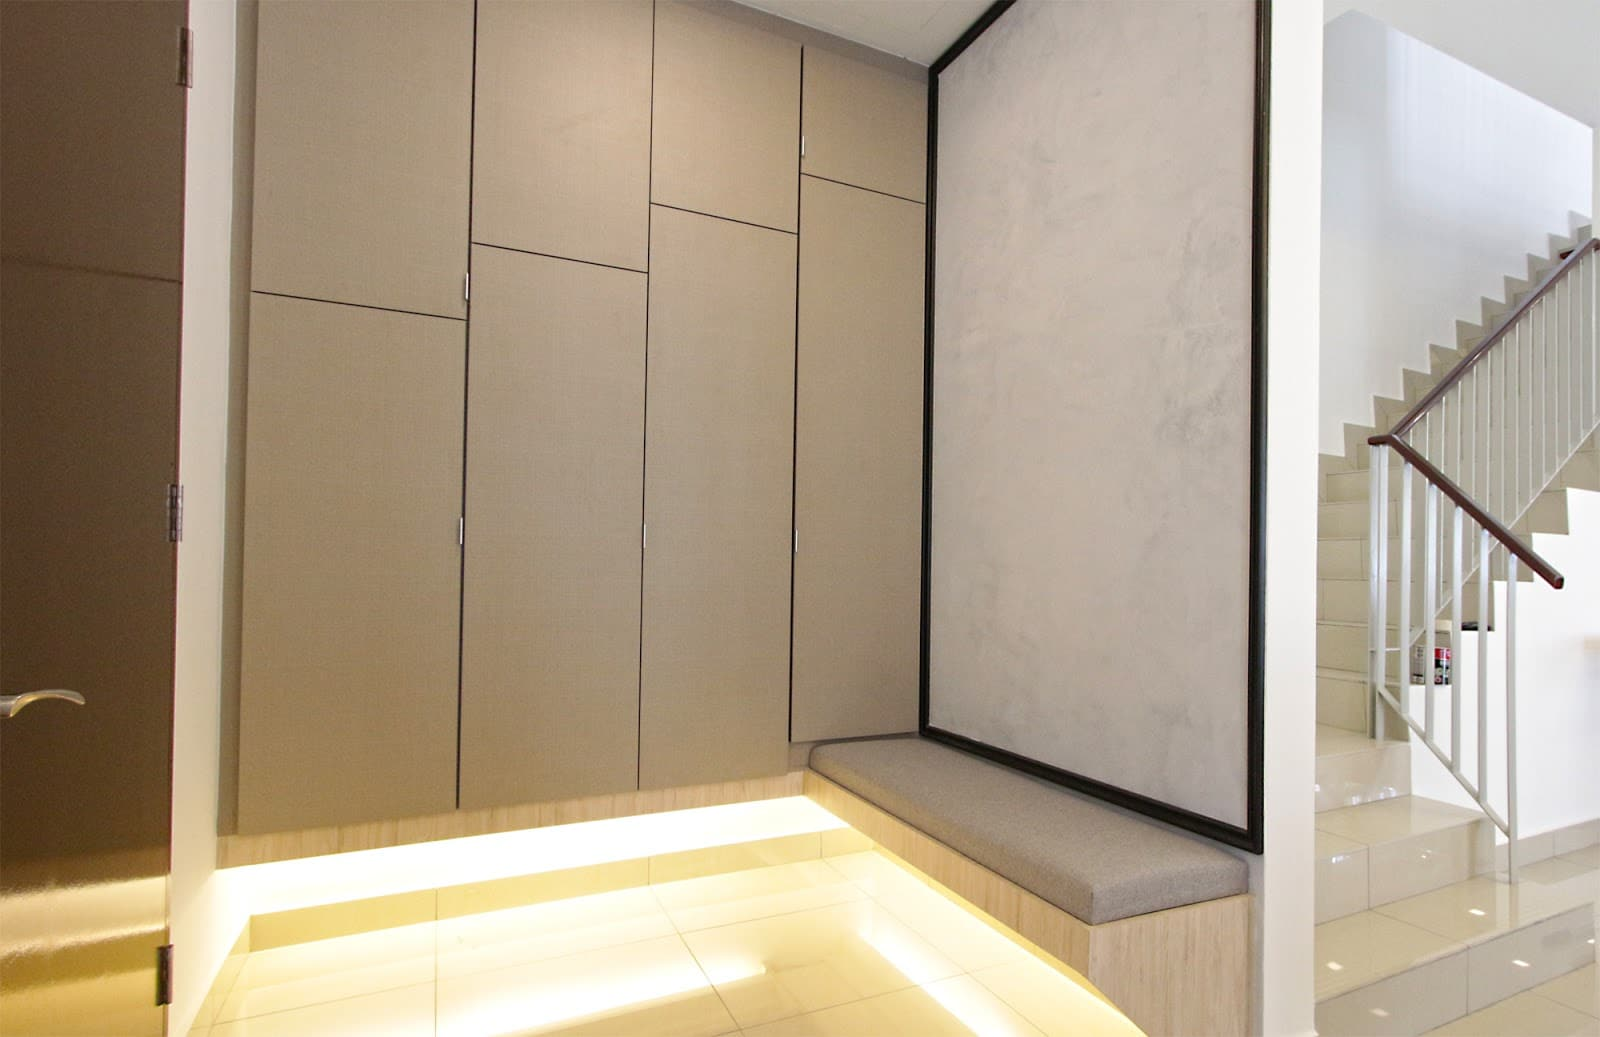 Top: Built-in wardrobe in one of the bedrooms. Above: Built-in cabinets and a seating area near the foyer area.